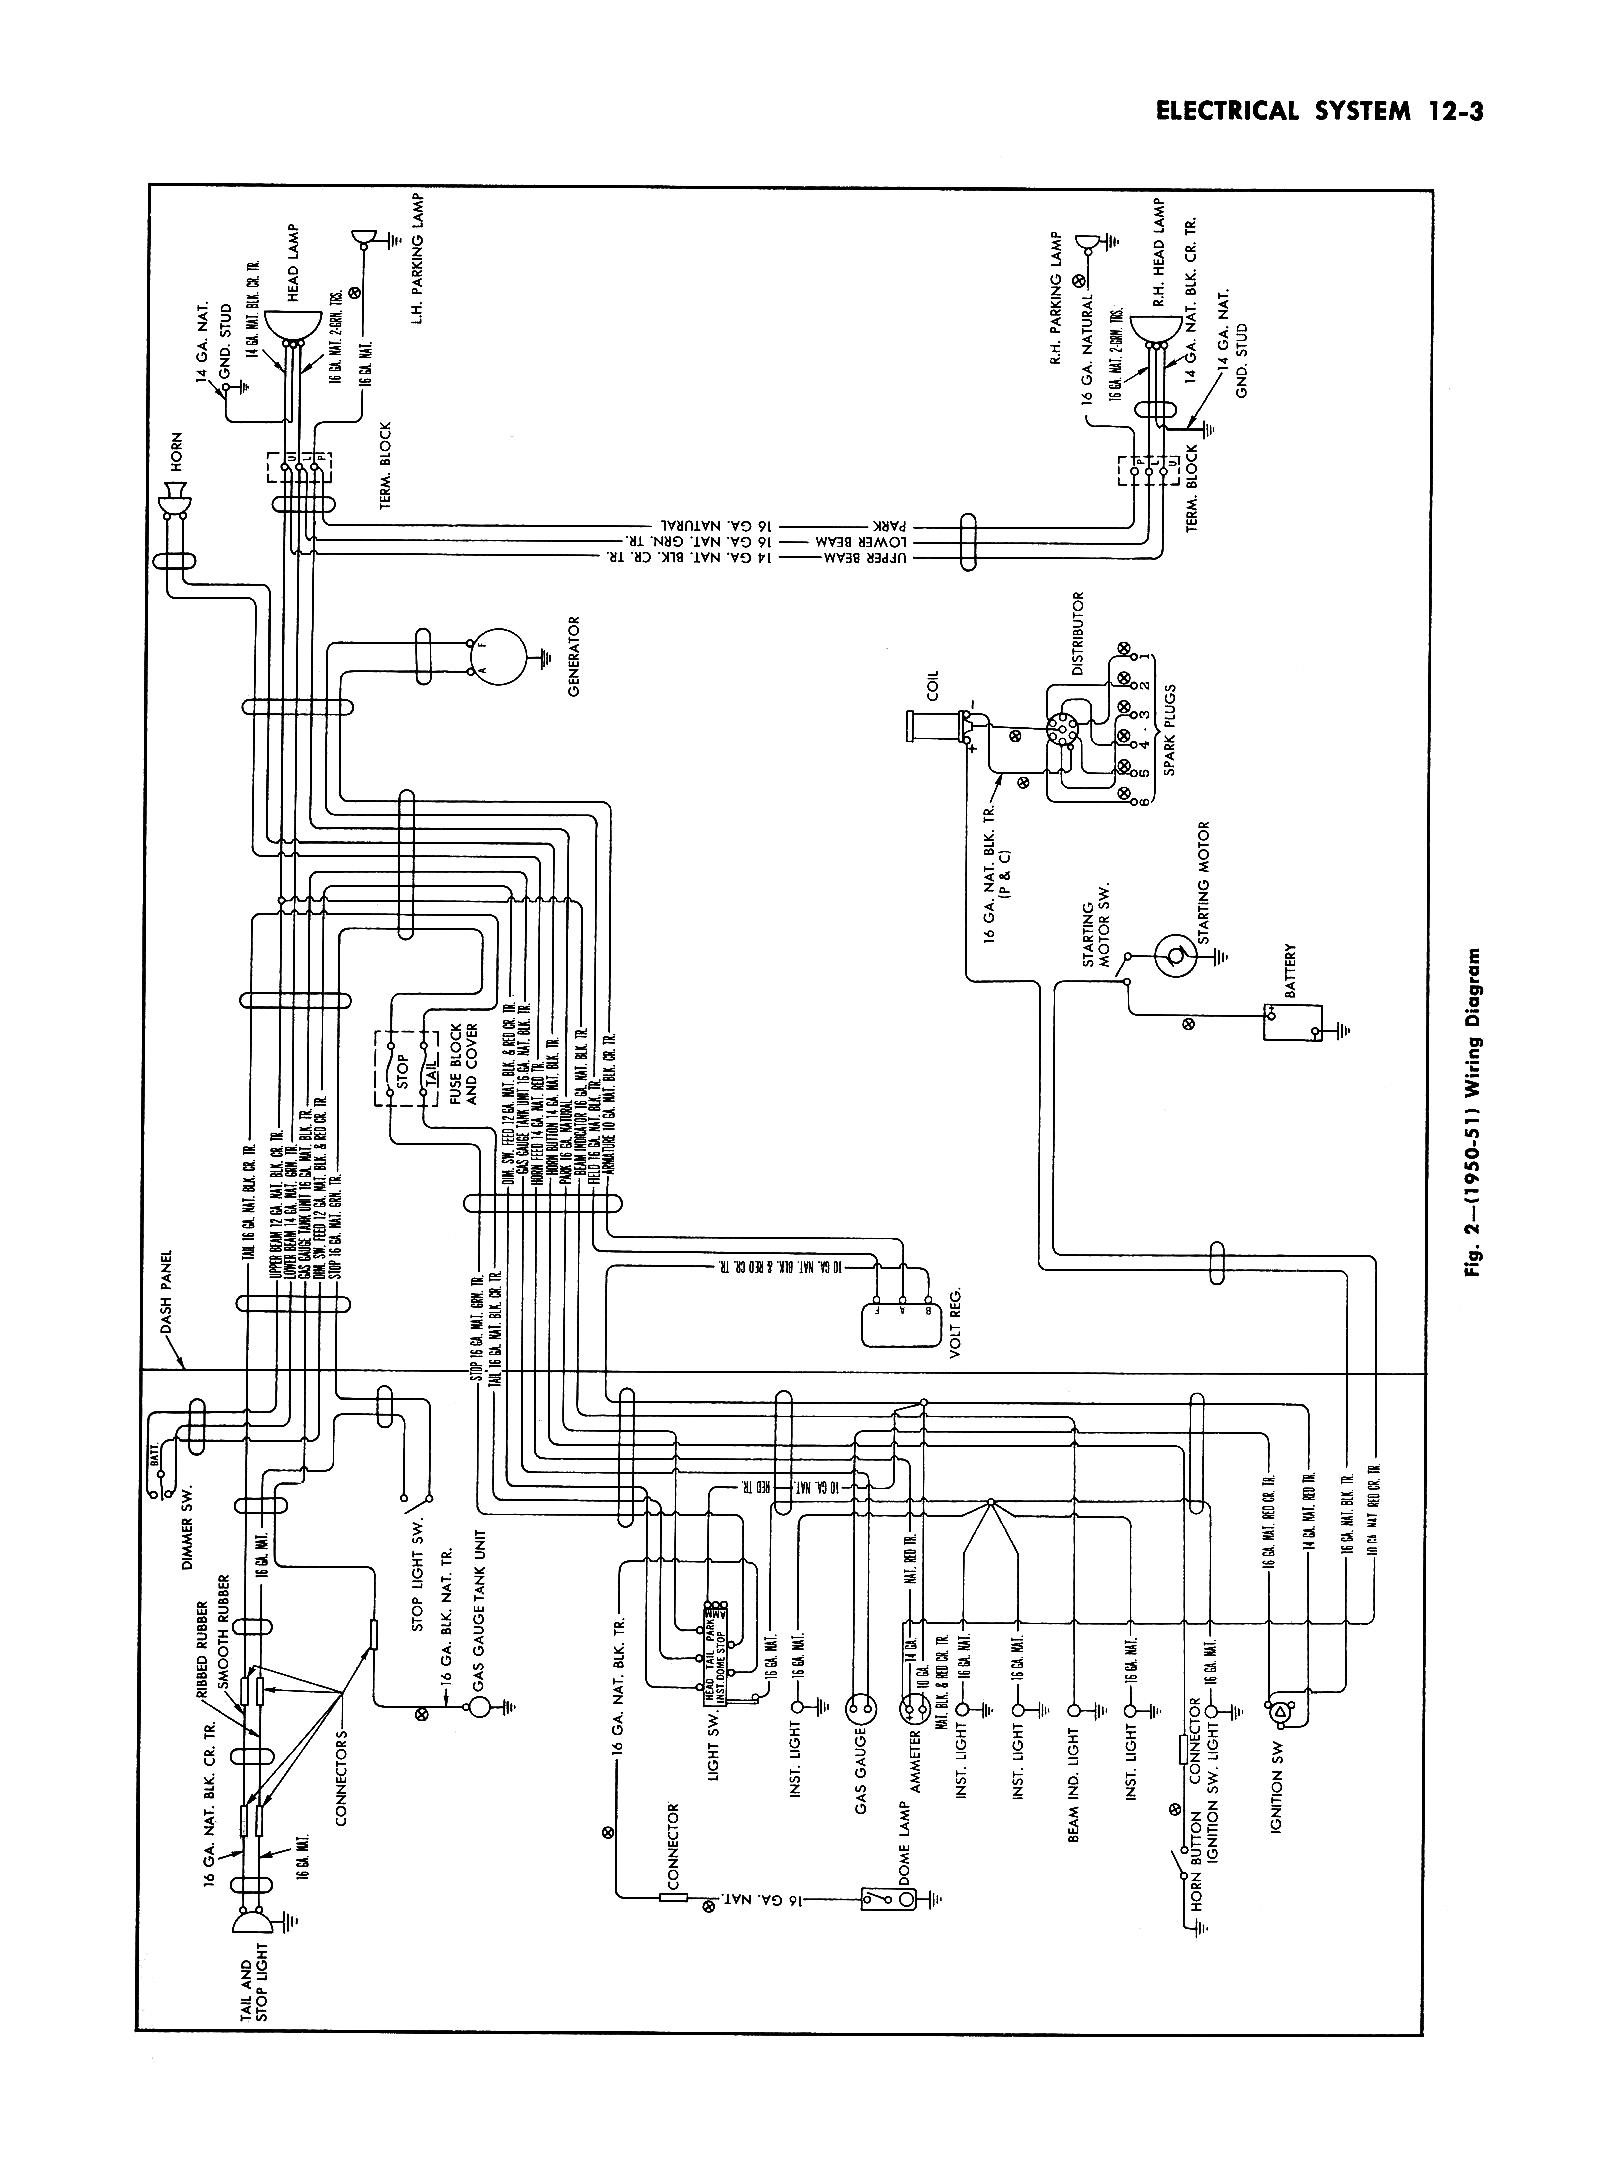 Chevy Silverado Wiring Diagram Wiring Diagram 1951 Chevy Truck Wiring Diagram Ezgo Controller Of Chevy Silverado Wiring Diagram